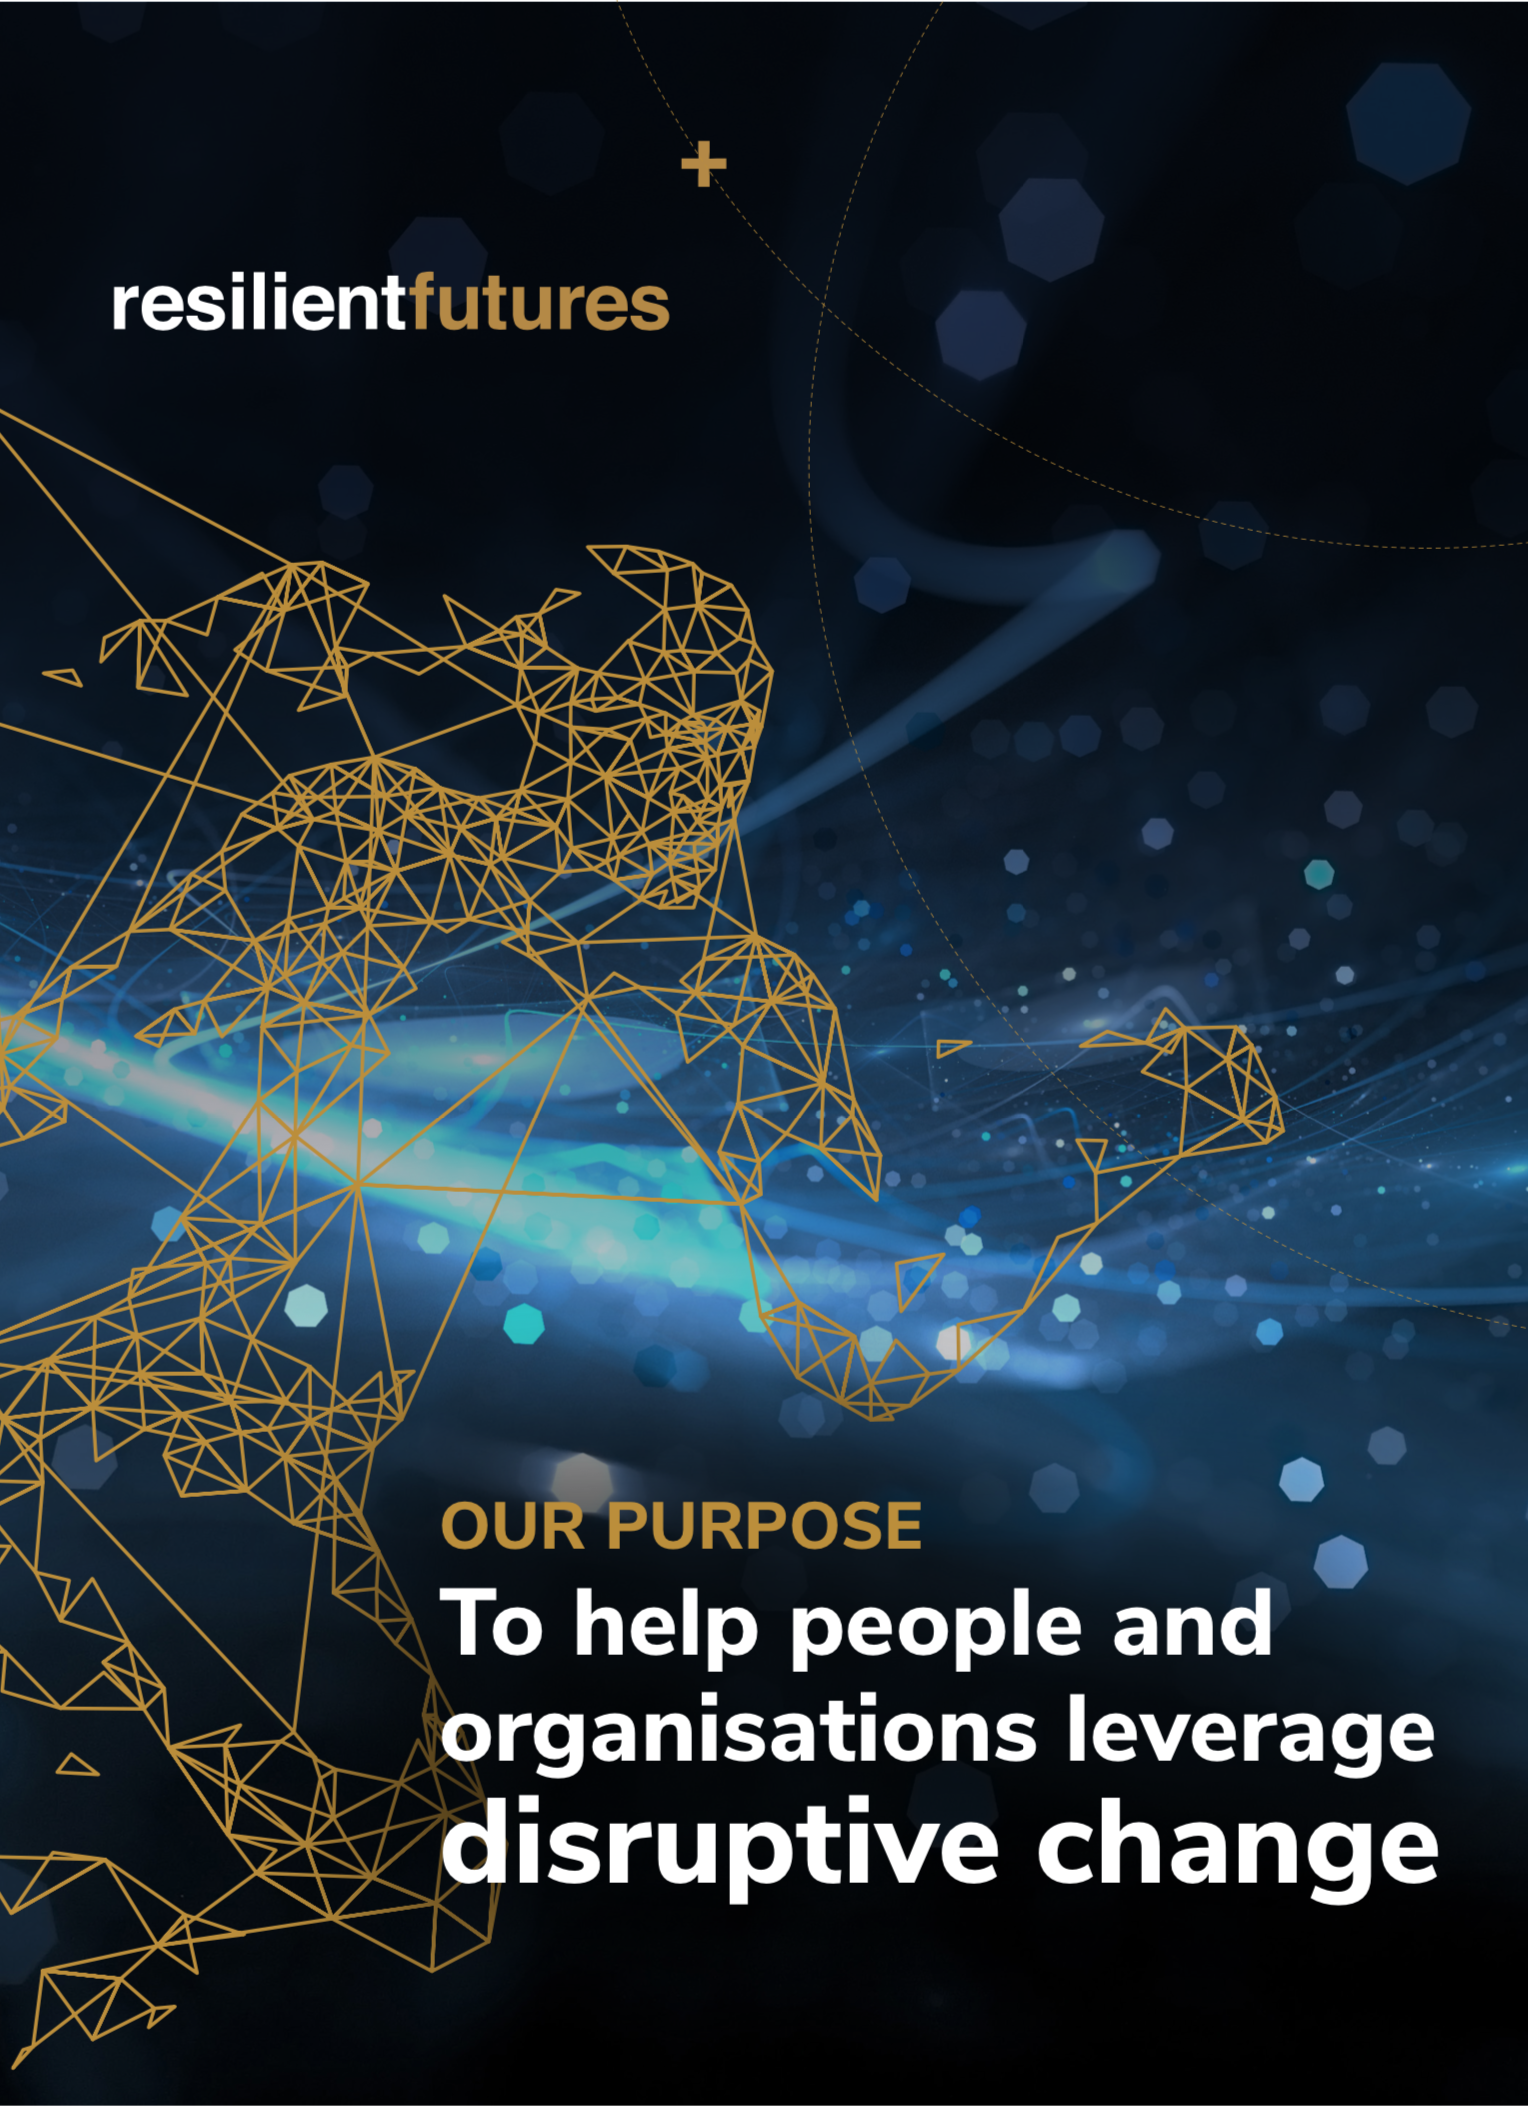 2019 OVERVIEW - For a concise overview of Resilient Futures, click here to download our 2019 overview document.